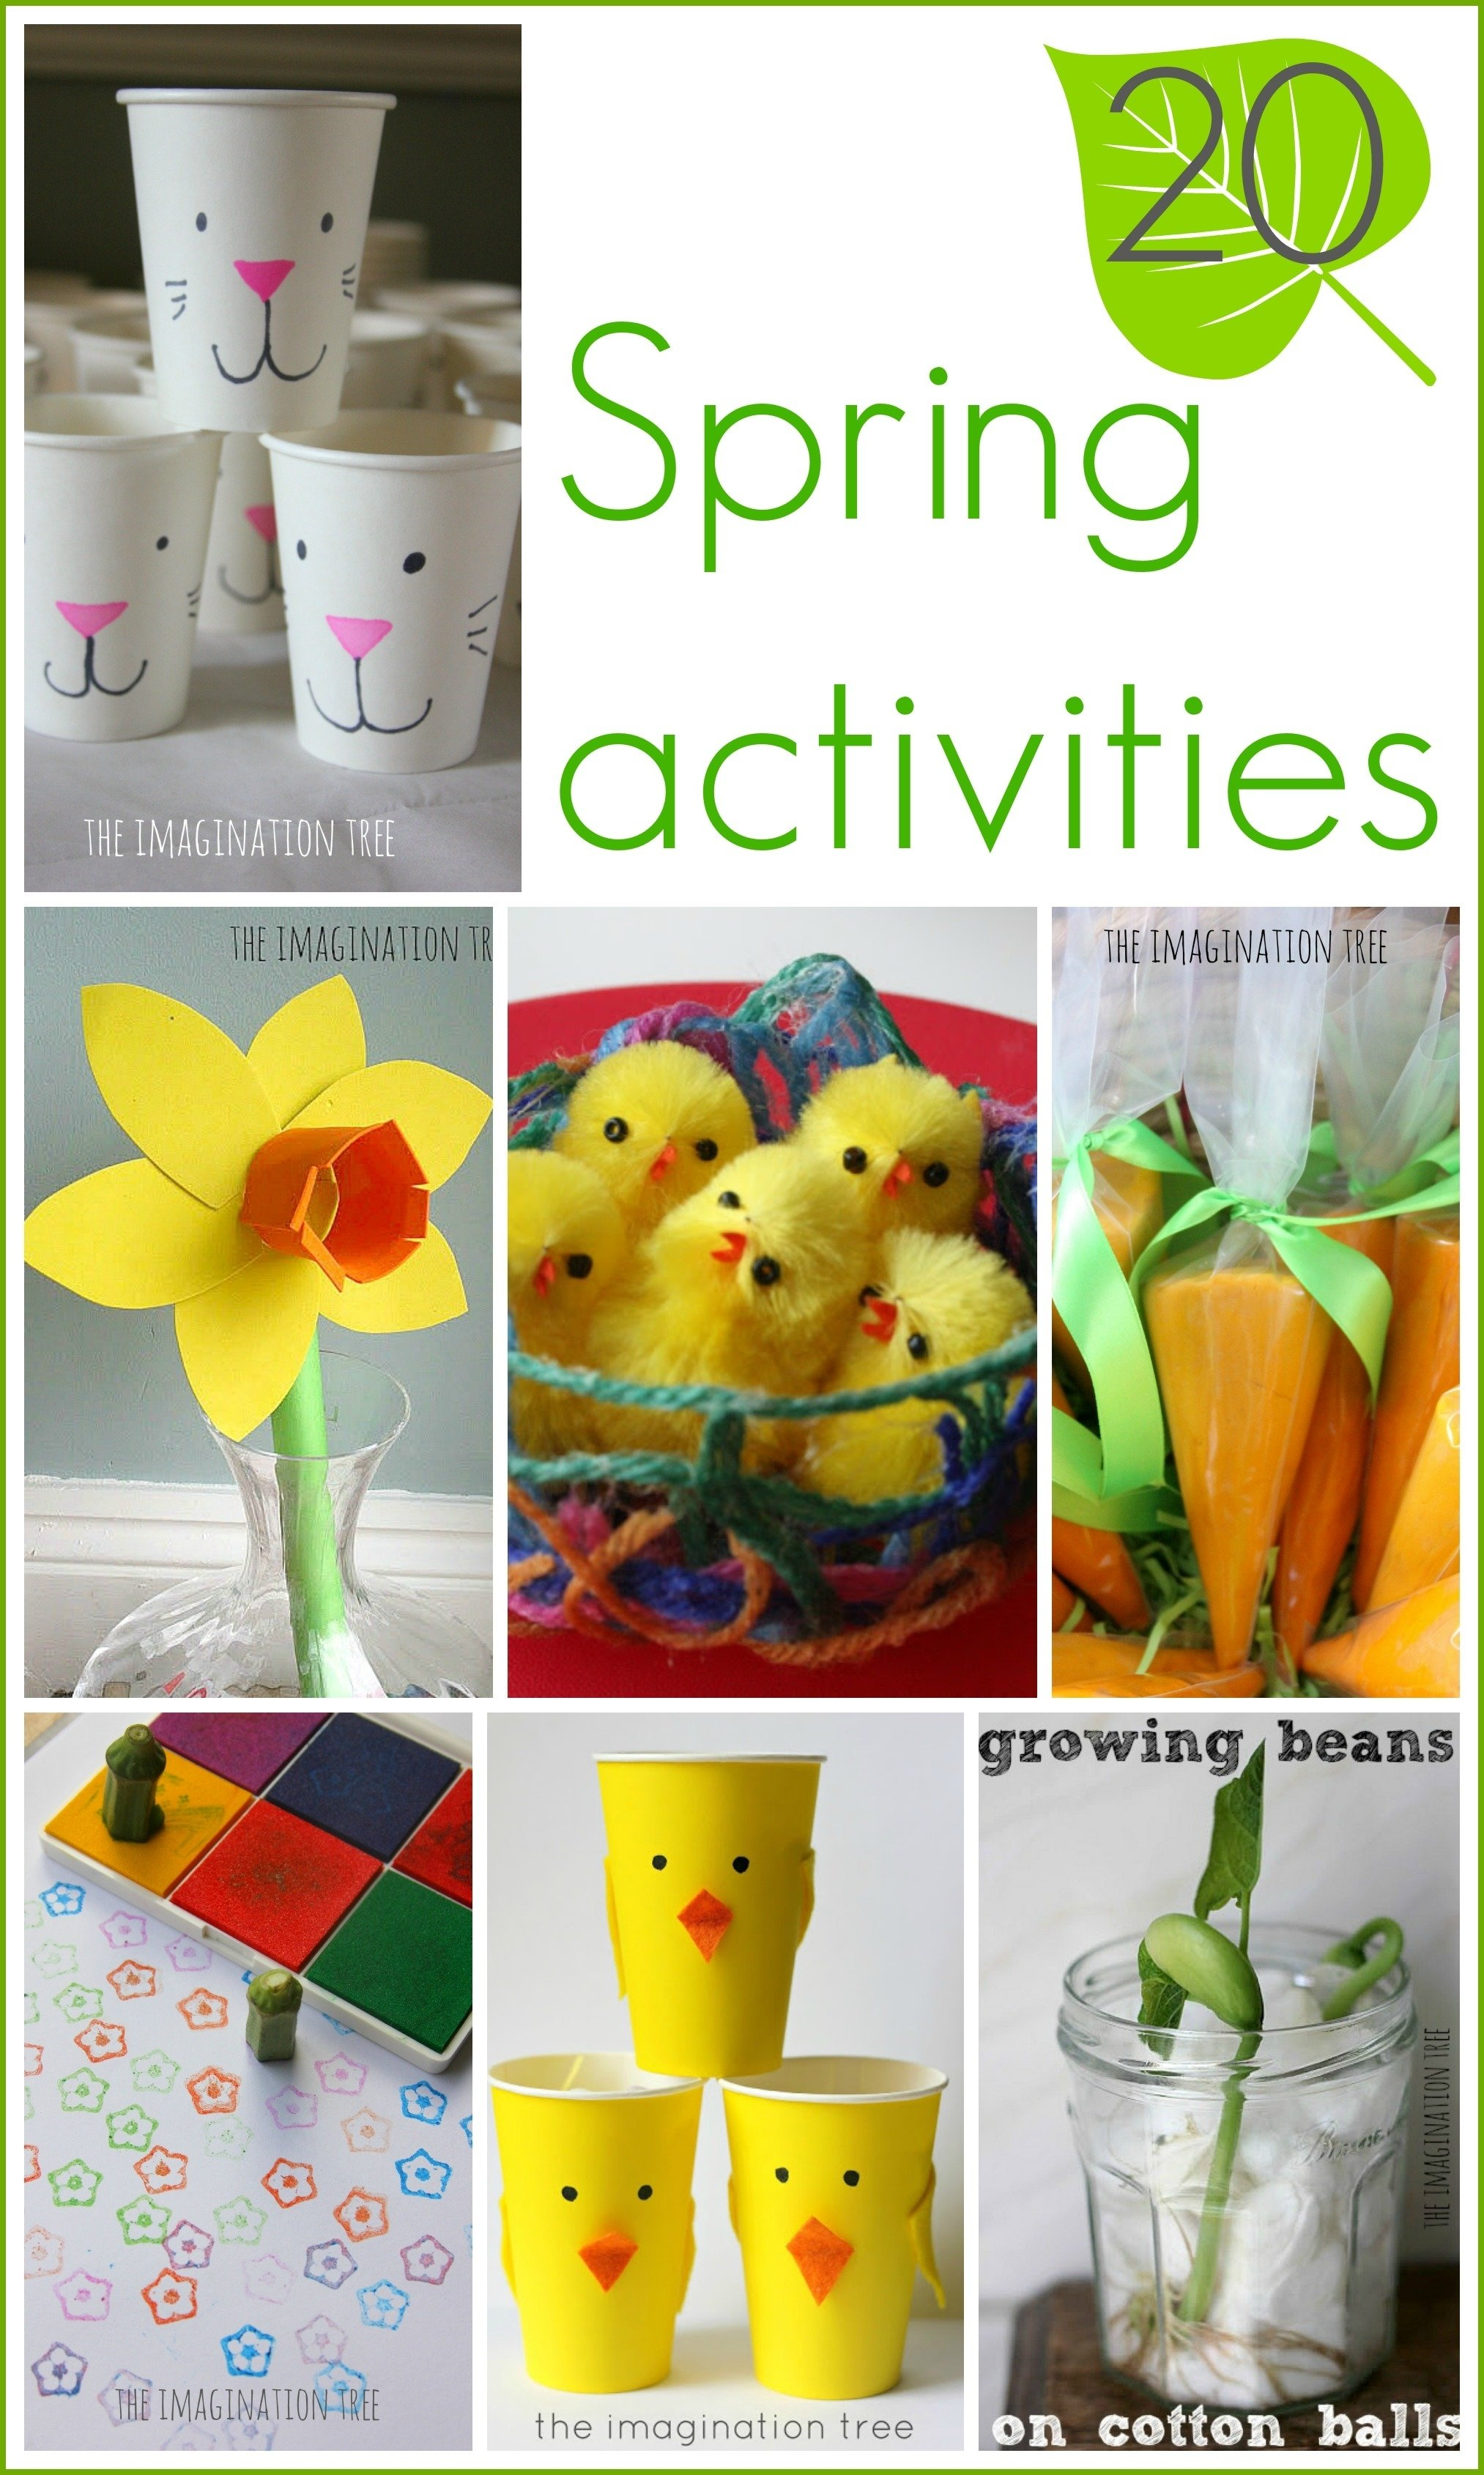 10 Fabulous Spring Craft Ideas For Kids 15 spring activities for kids the imagination tree 2021